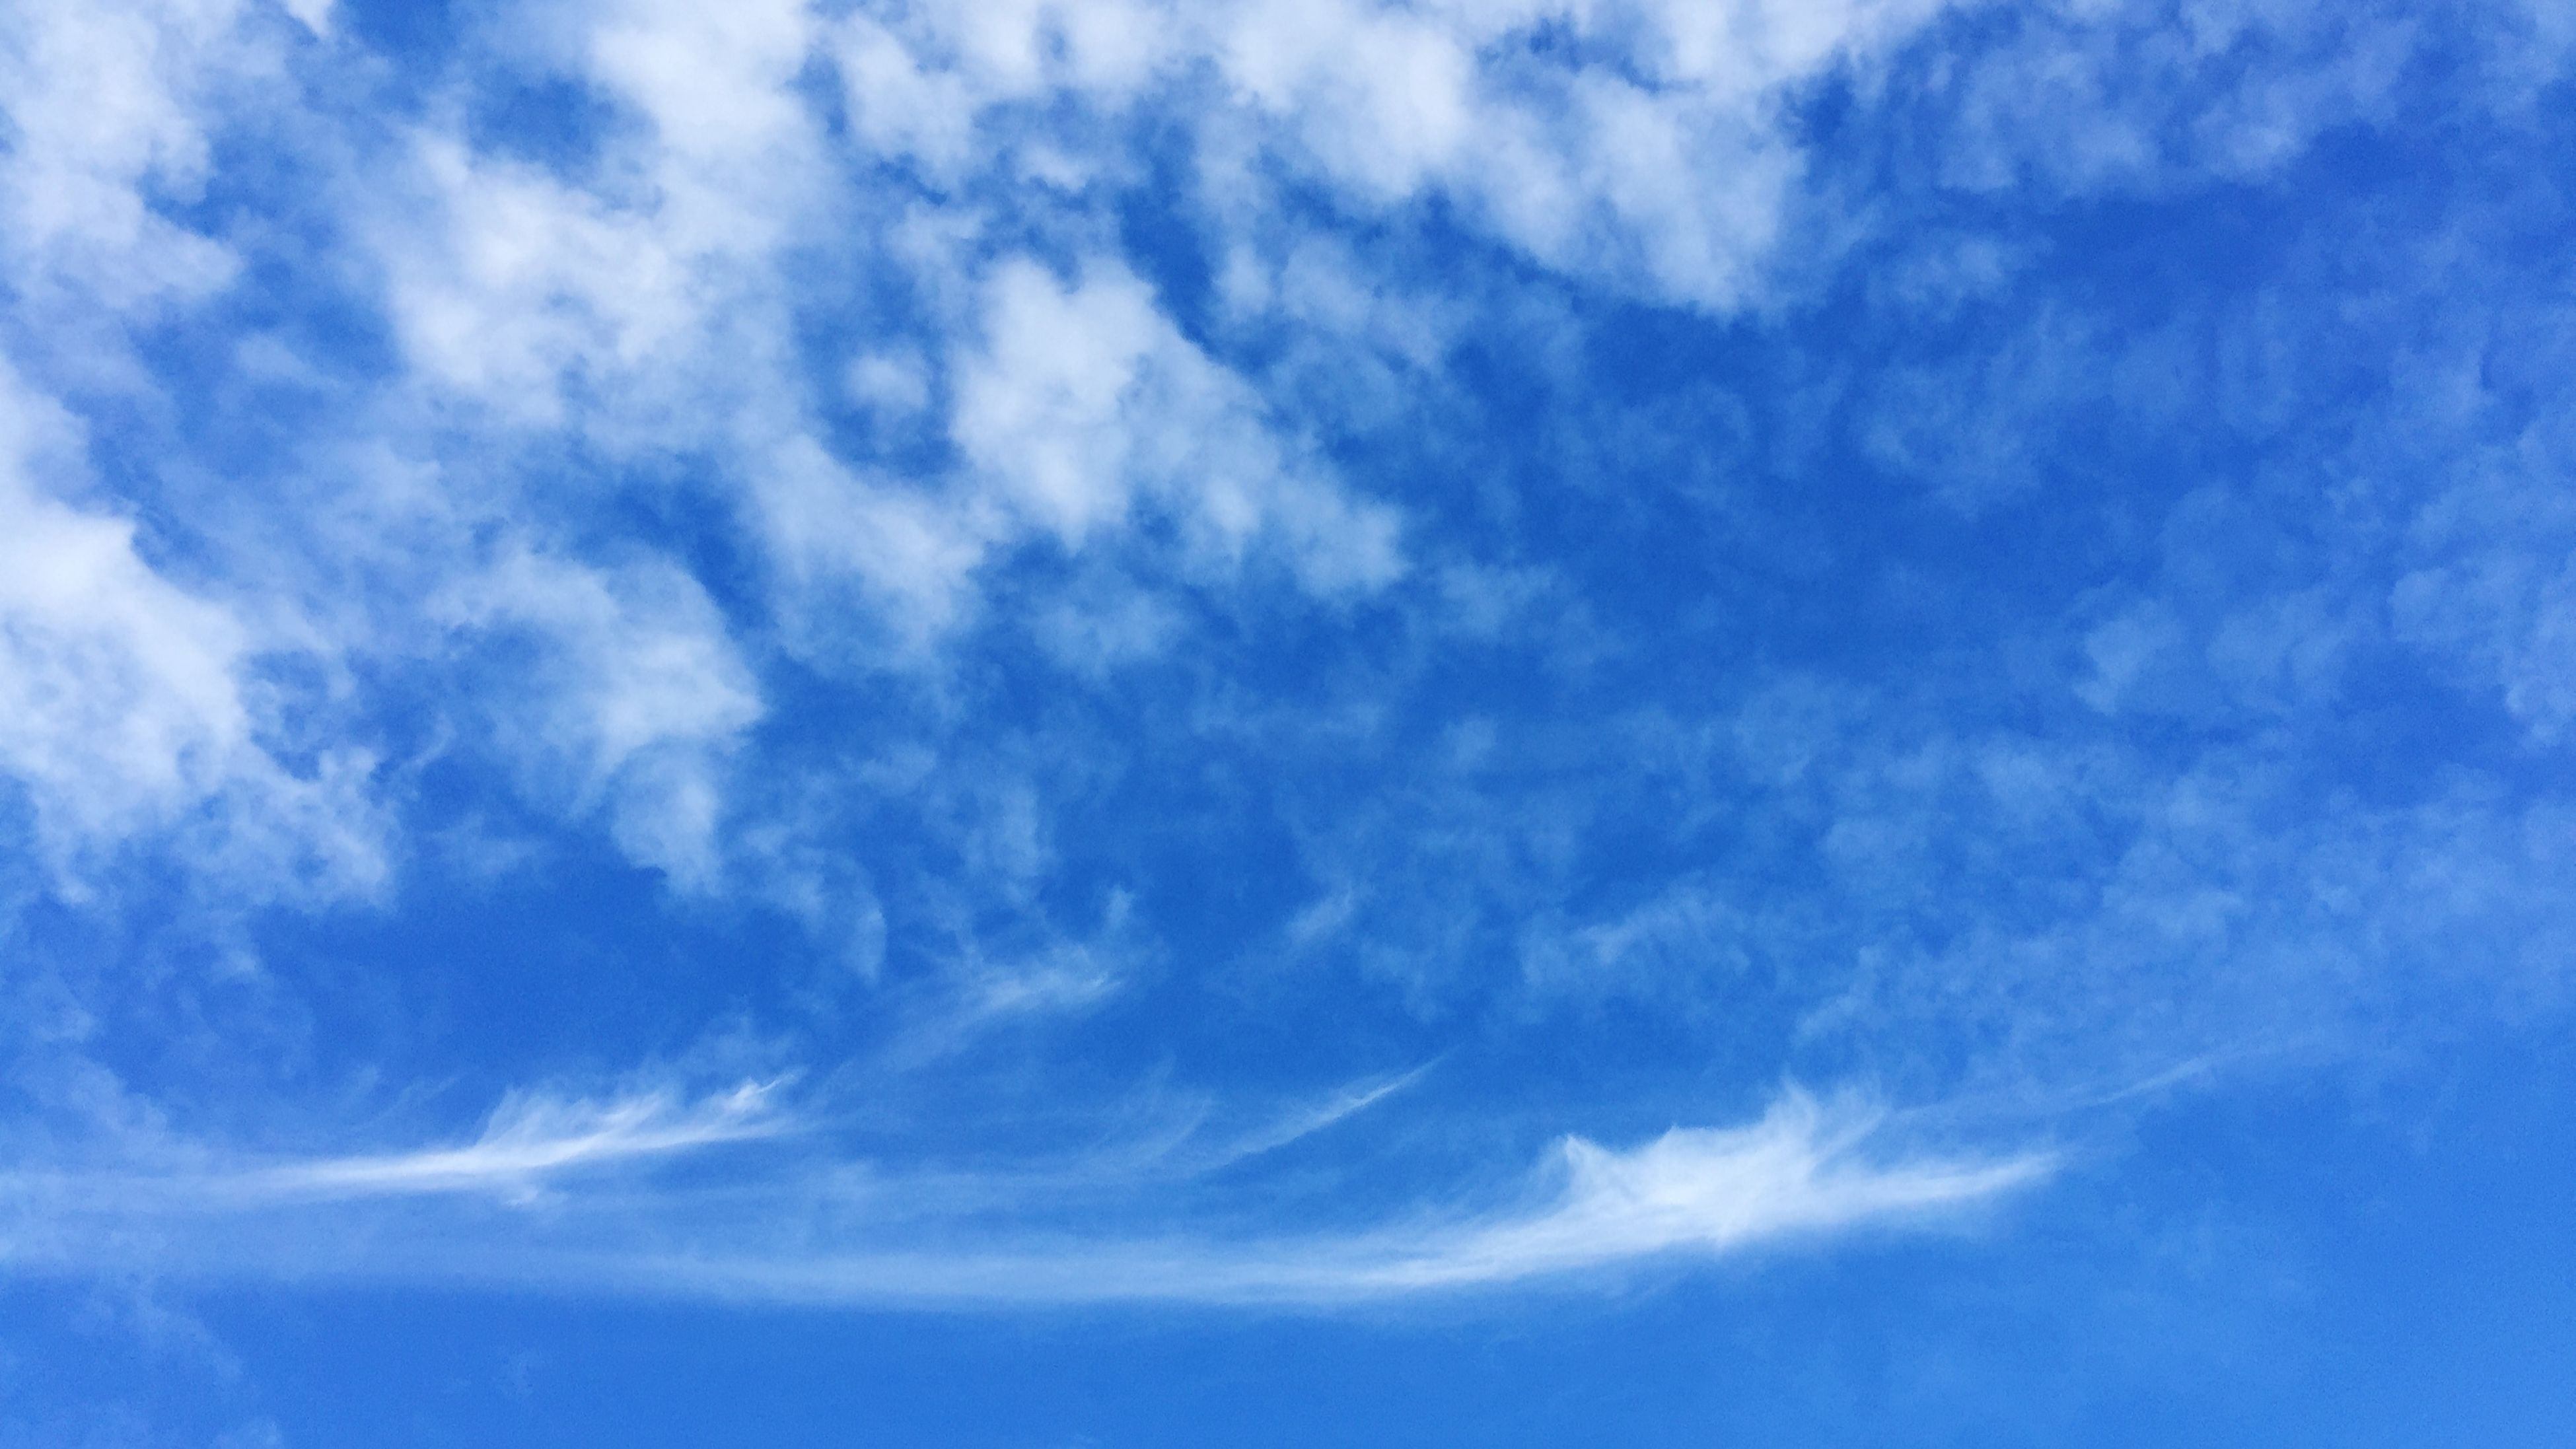 sky, blue, low angle view, cloud - sky, beauty in nature, tranquility, sky only, scenics, nature, tranquil scene, backgrounds, cloudy, cloud, cloudscape, full frame, idyllic, outdoors, day, white color, no people